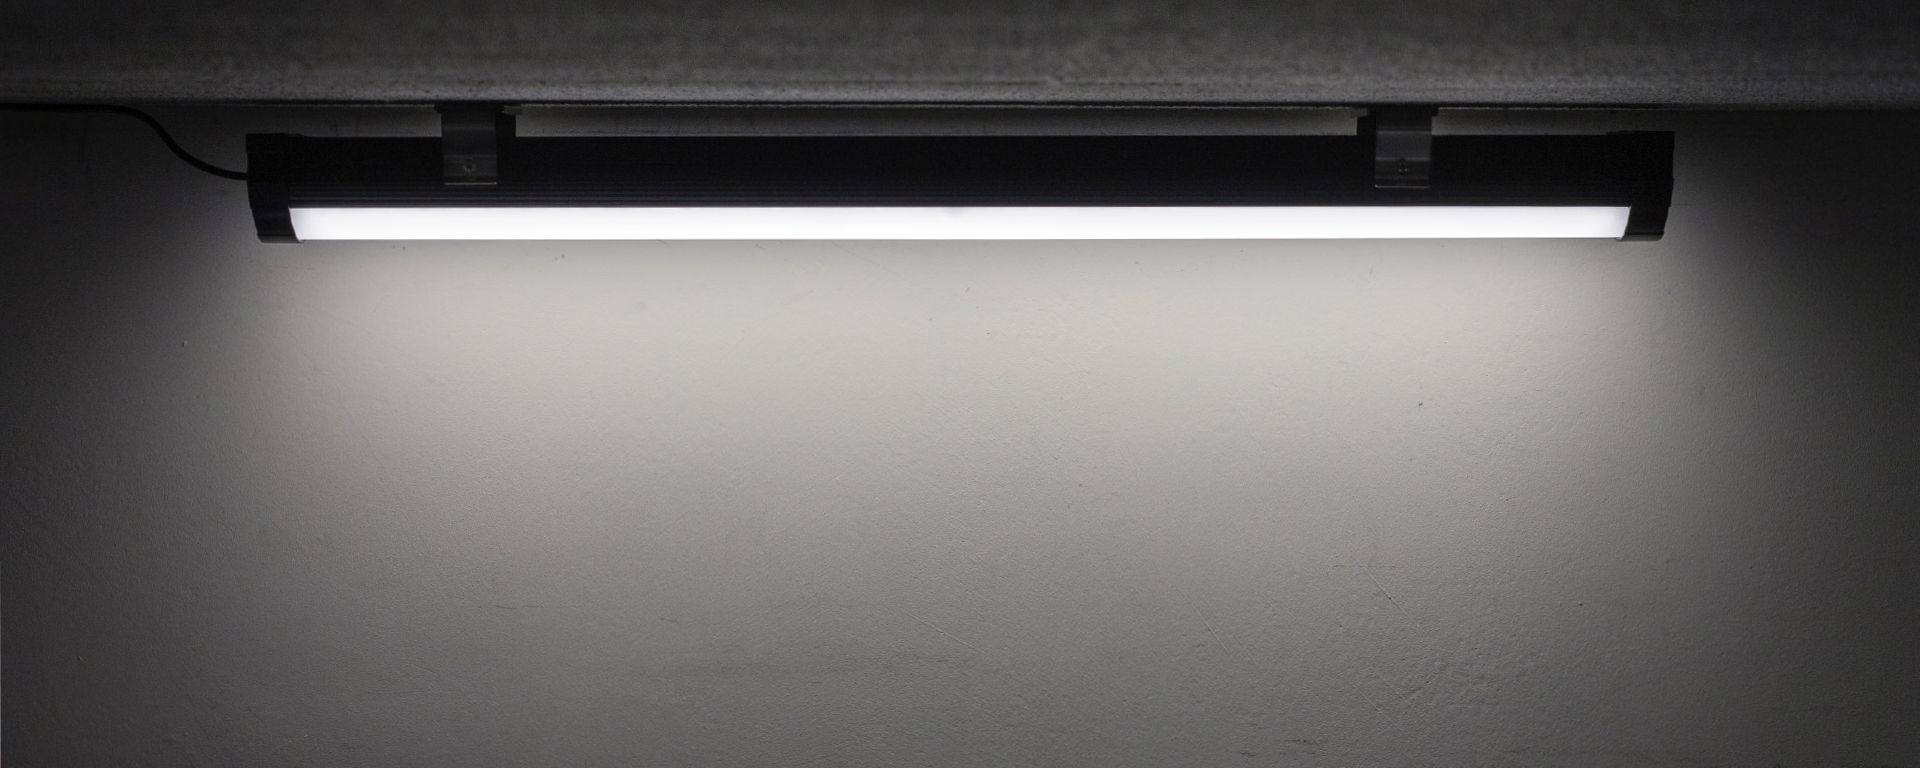 BNS - LED Batten Light for mining and industrial applications, close up on installation.